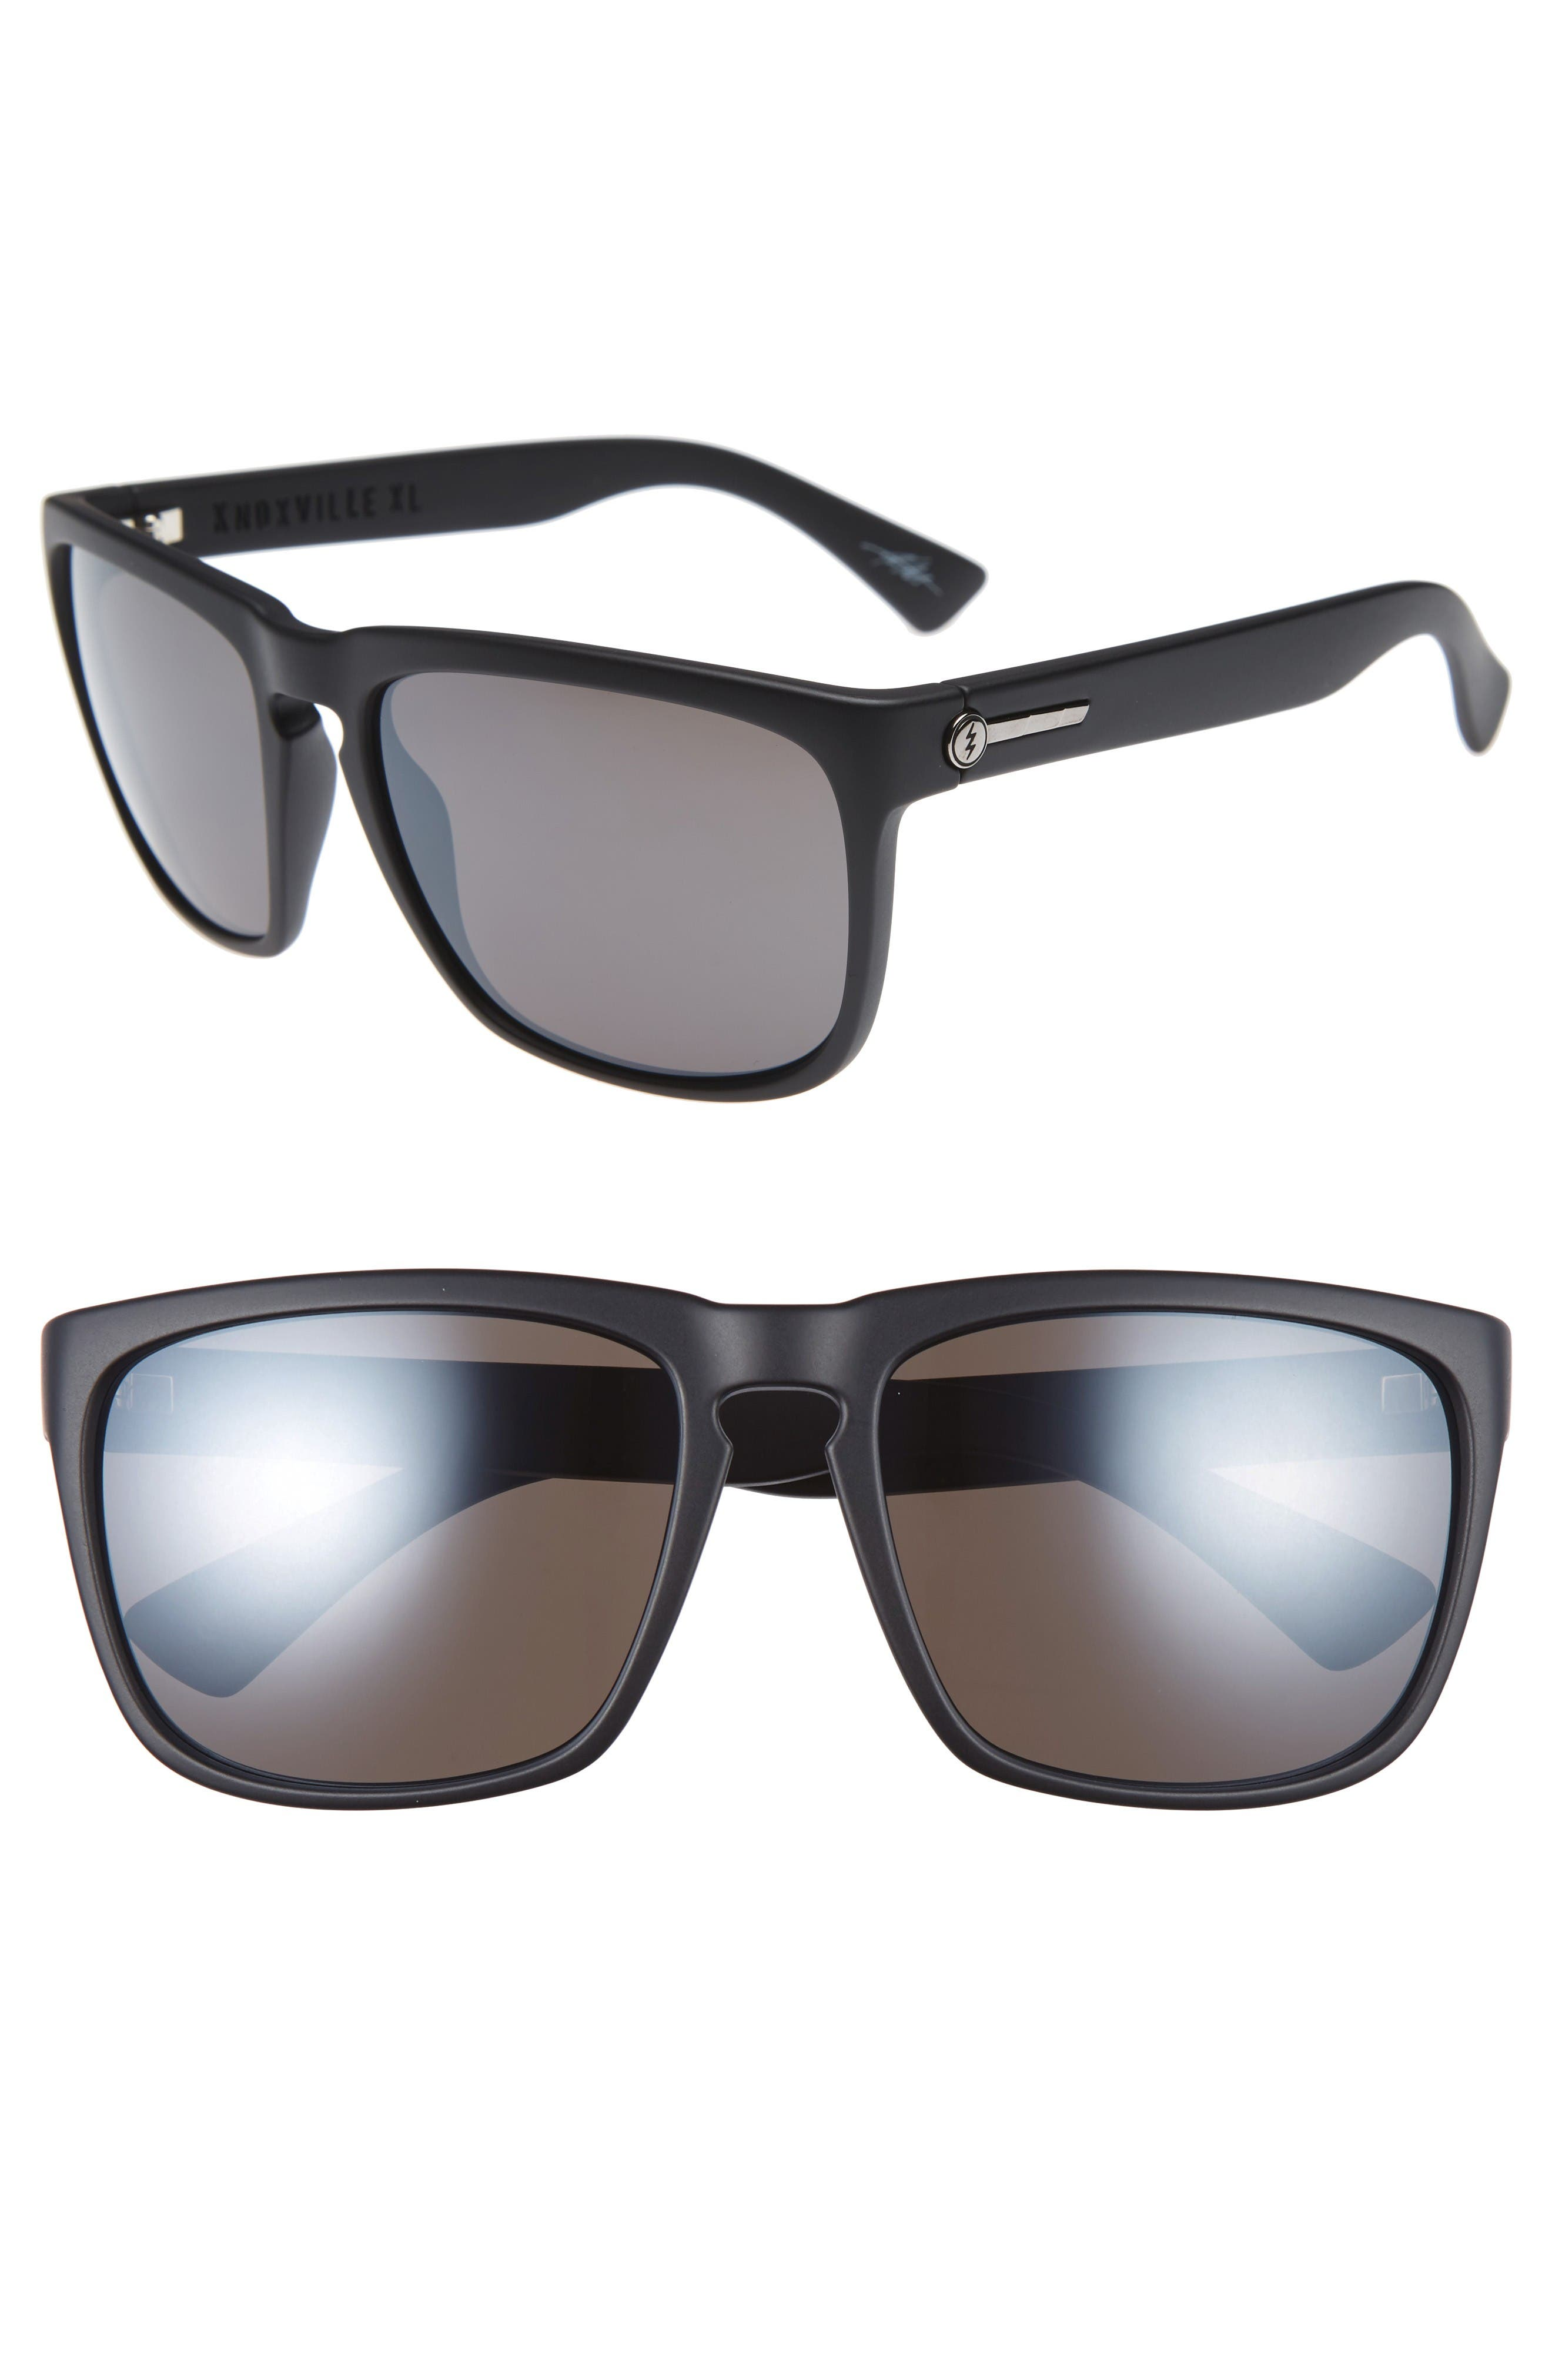 Main Image - ELECTRIC Knoxville XL 61mm Sunglasses